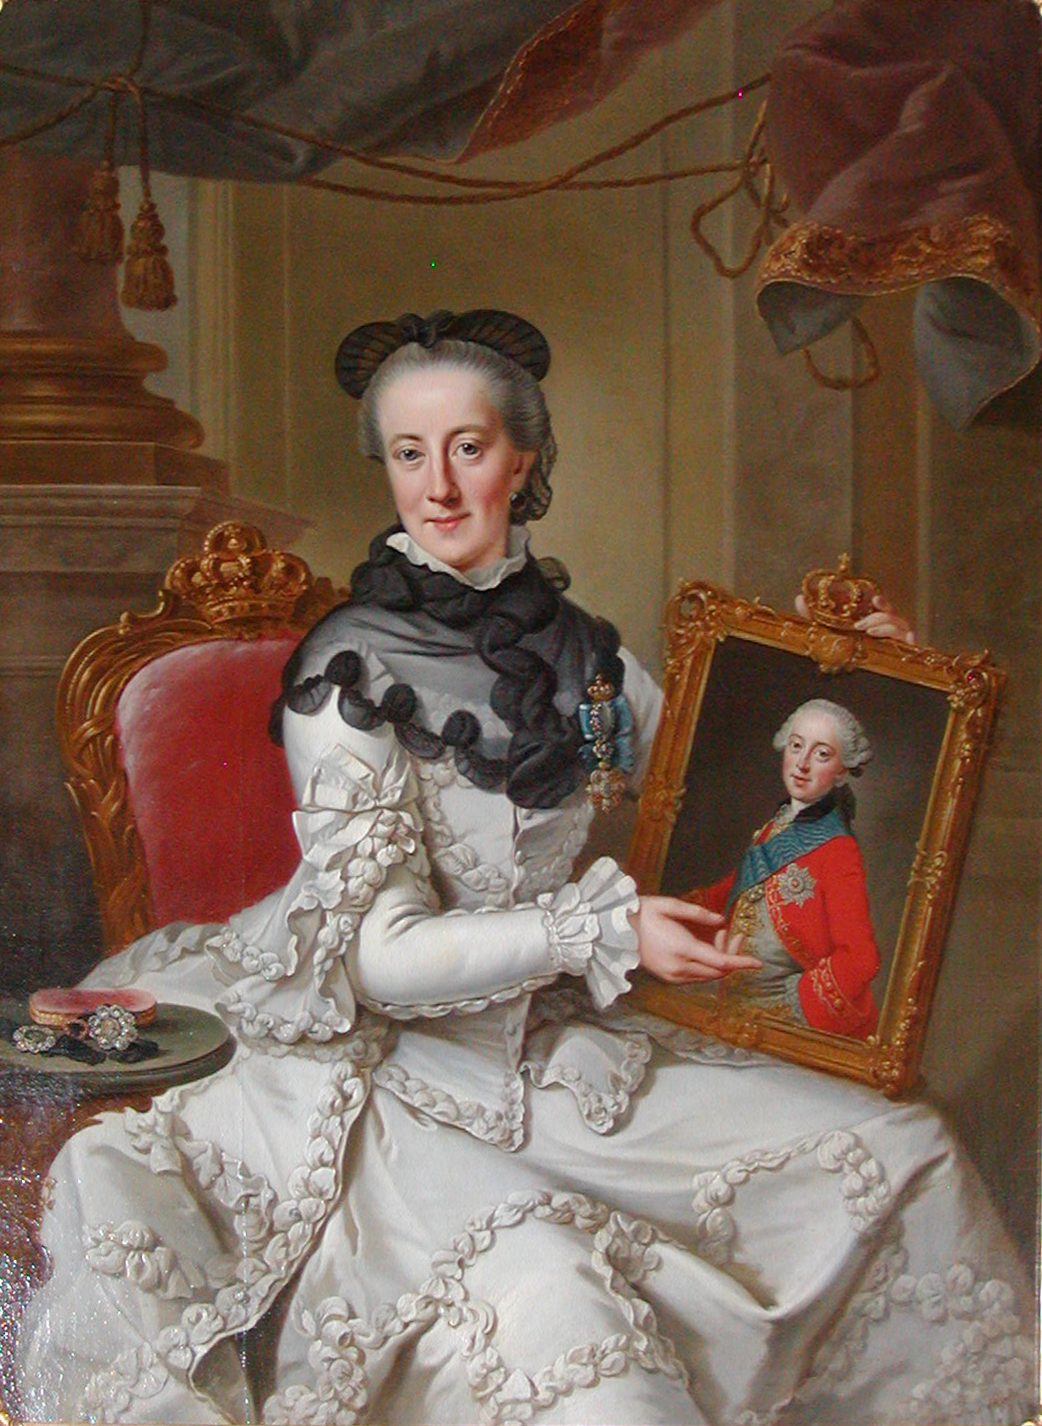 https://i0.wp.com/upload.wikimedia.org/wikipedia/commons/b/b9/Enkedronning_Juliane_Marie.jpg